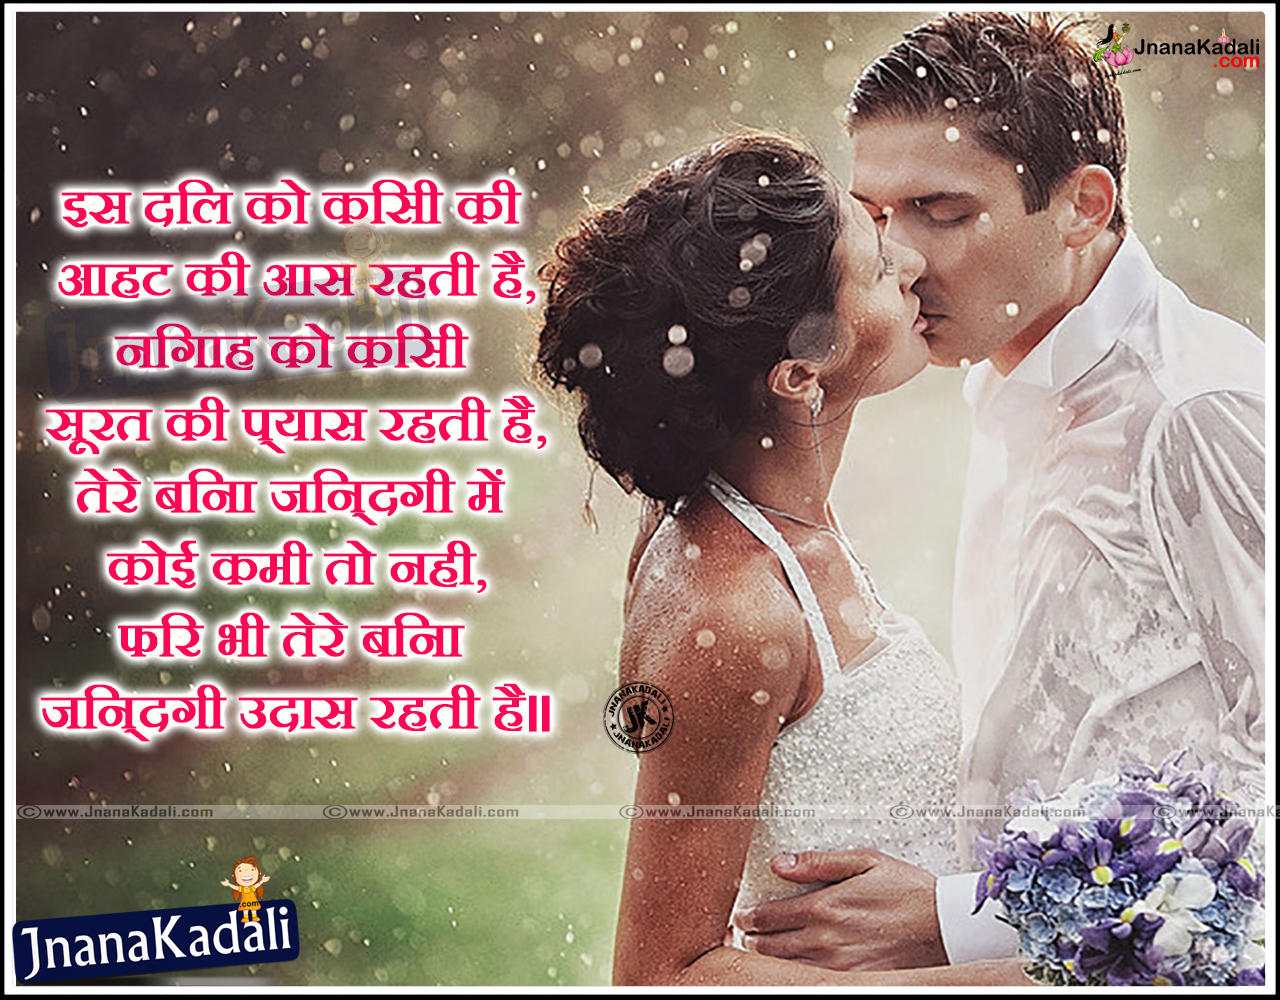 sad quotes tumblr about love that make you cry about life. telugu one side love quotes greetings ...